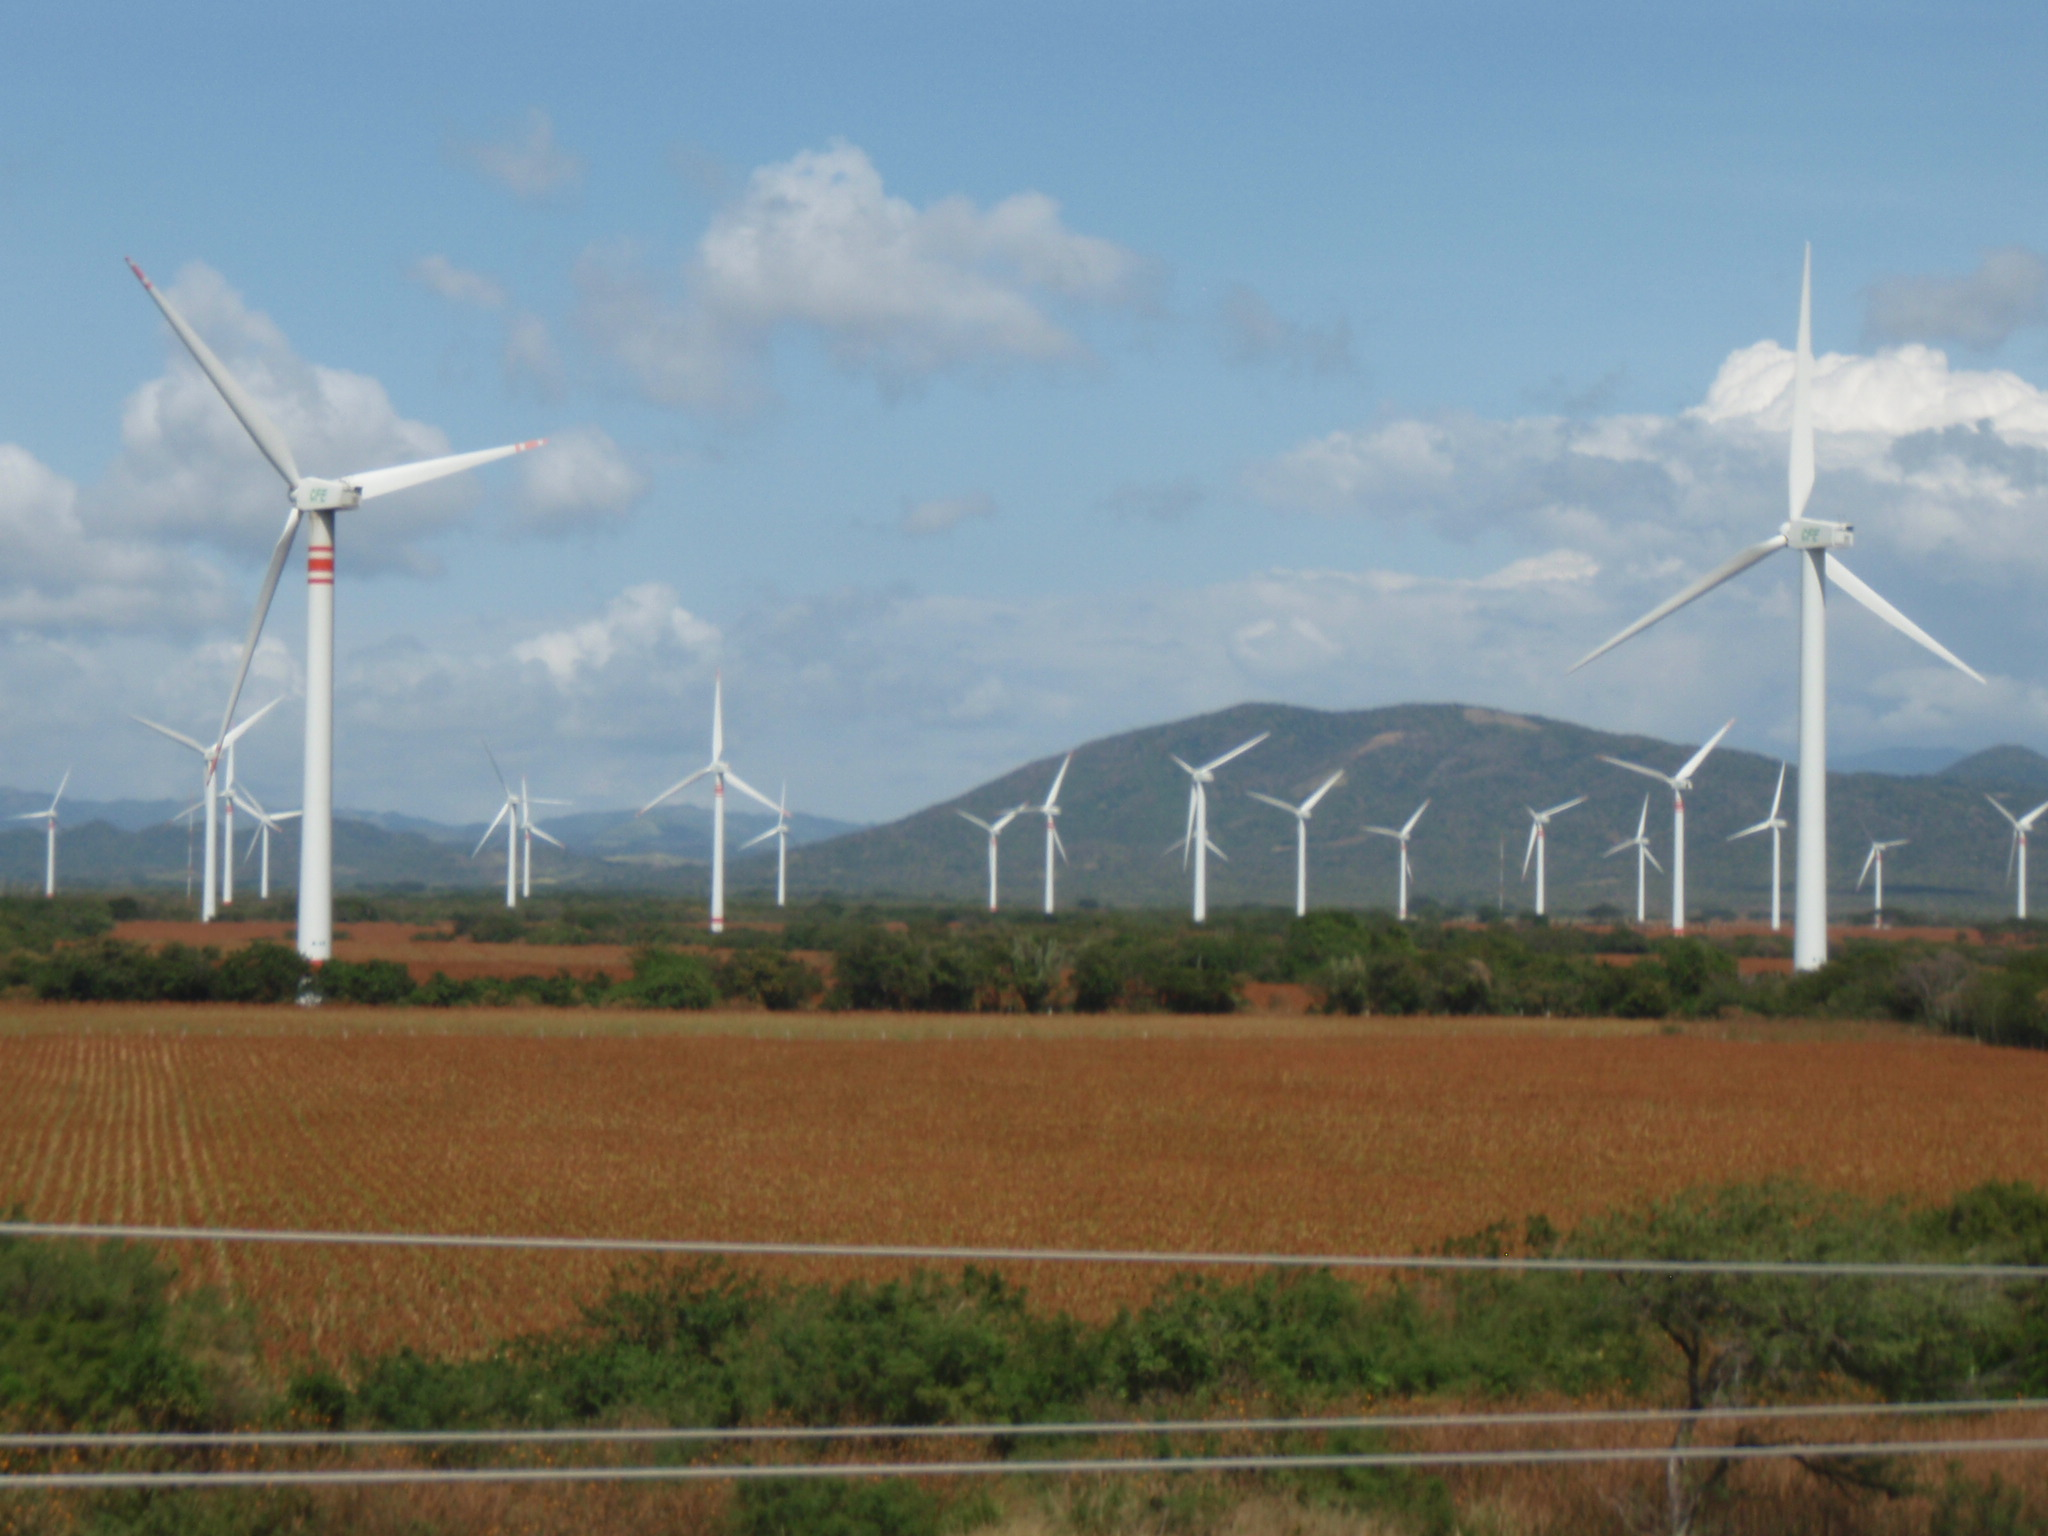 Wind farms East of Tehuantepec